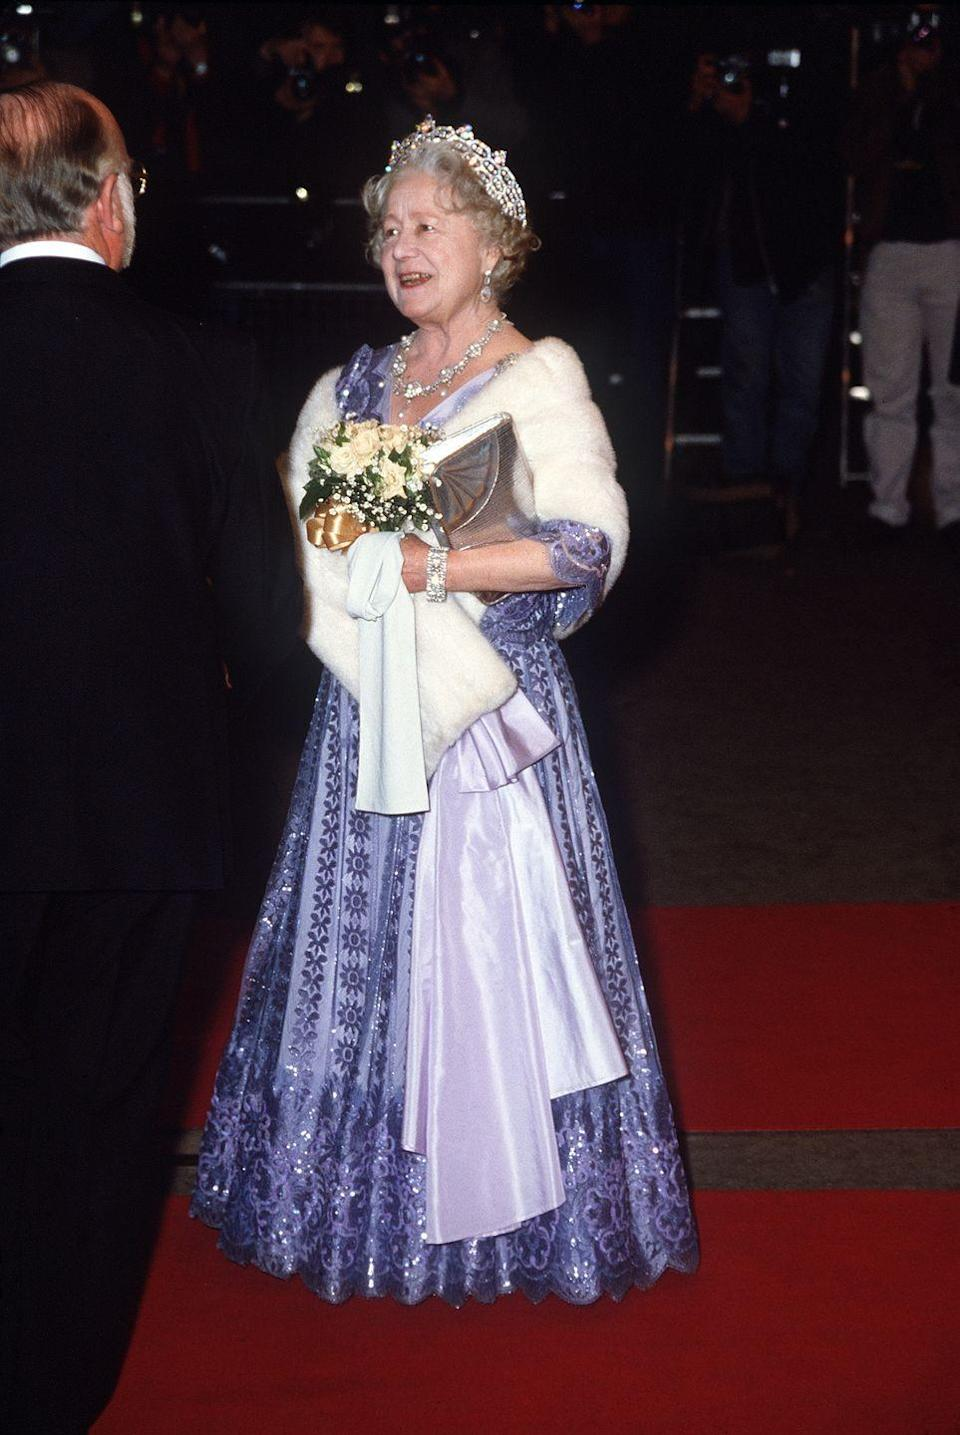 <p>The Queen Mother covered up in a white fur stole at a 1983 film premiere in London, however you can still see the glaring similarities to Rapunzel's purple gown. </p>